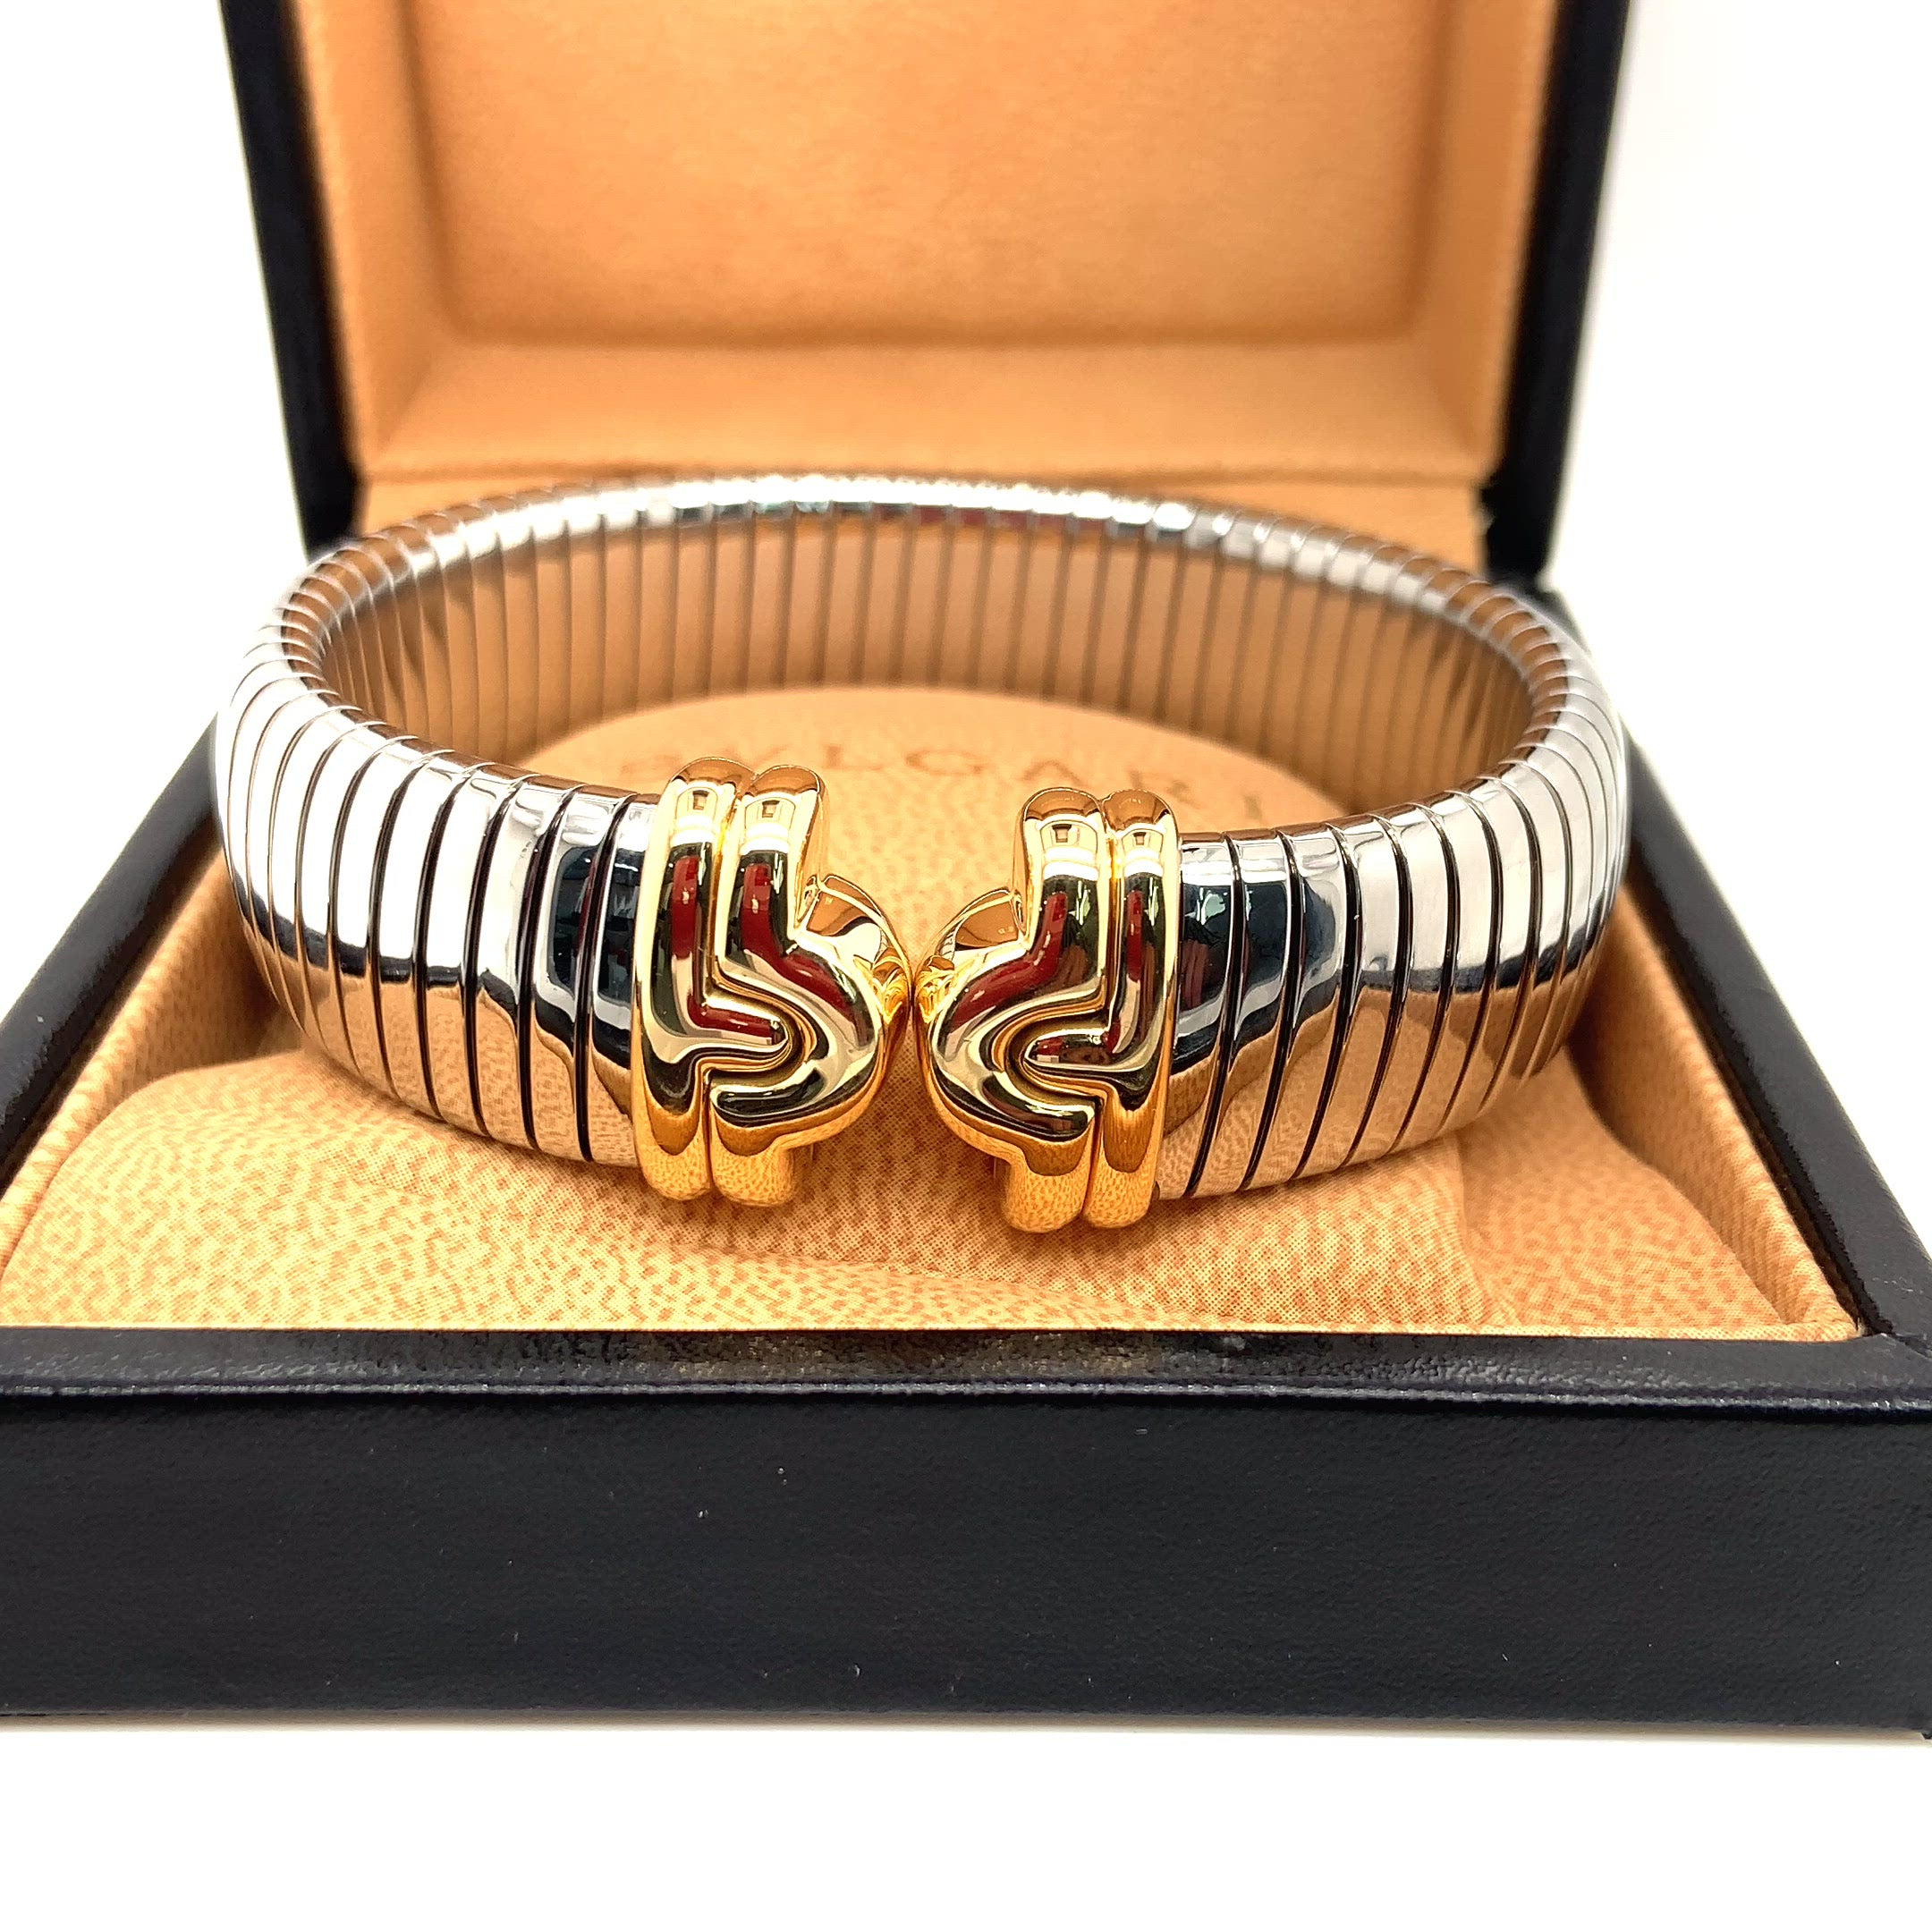 BVLGARI Parentesi Tubogas Cuff Bangle 18ct Gold & Stainless Steel